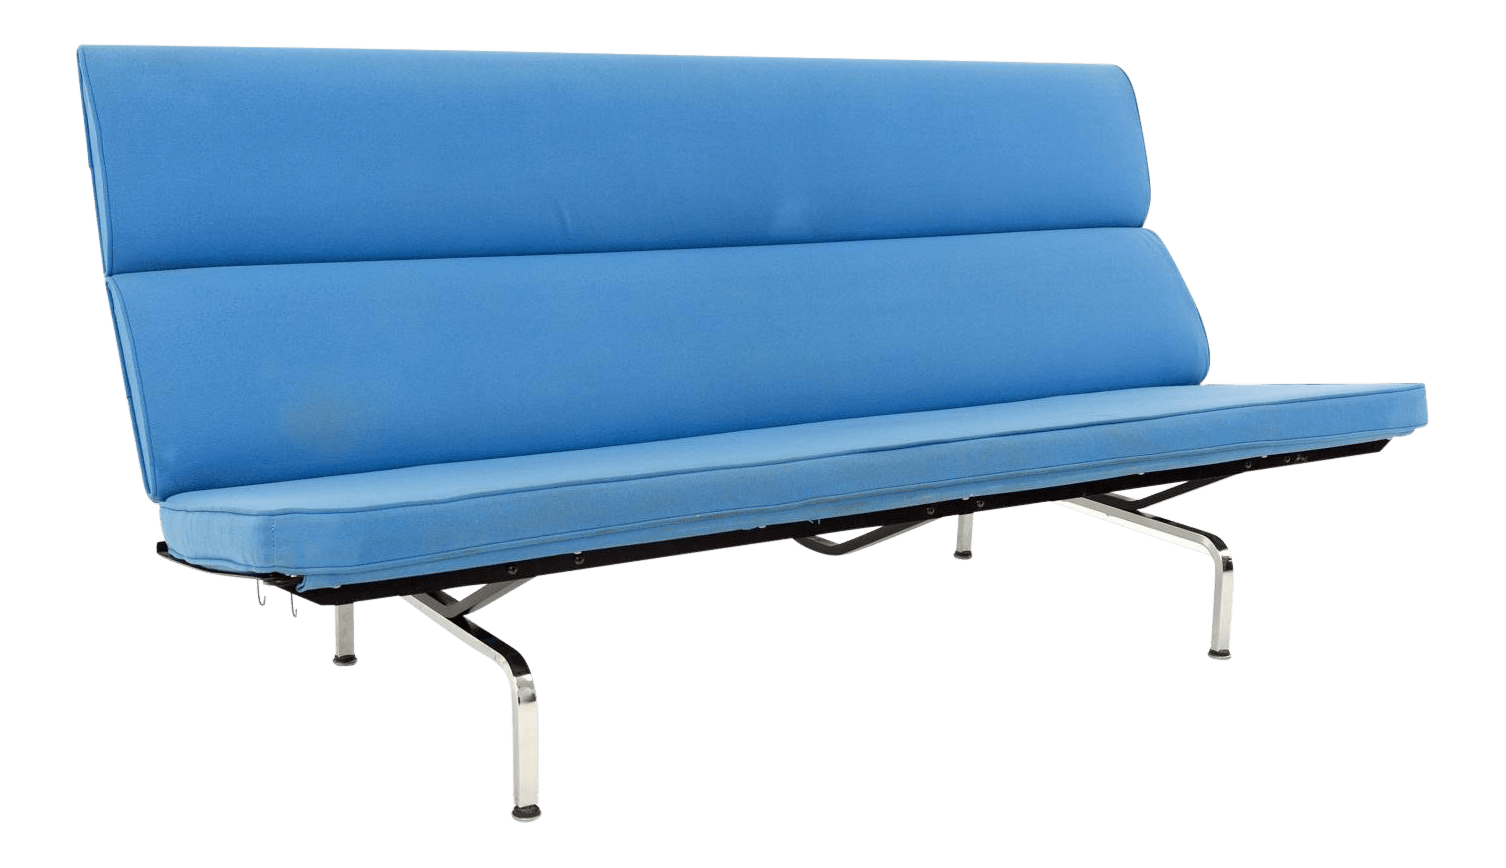 Sofa X Long Eames For Herman Miller Mid Century Modern Compact Daybed Sofa